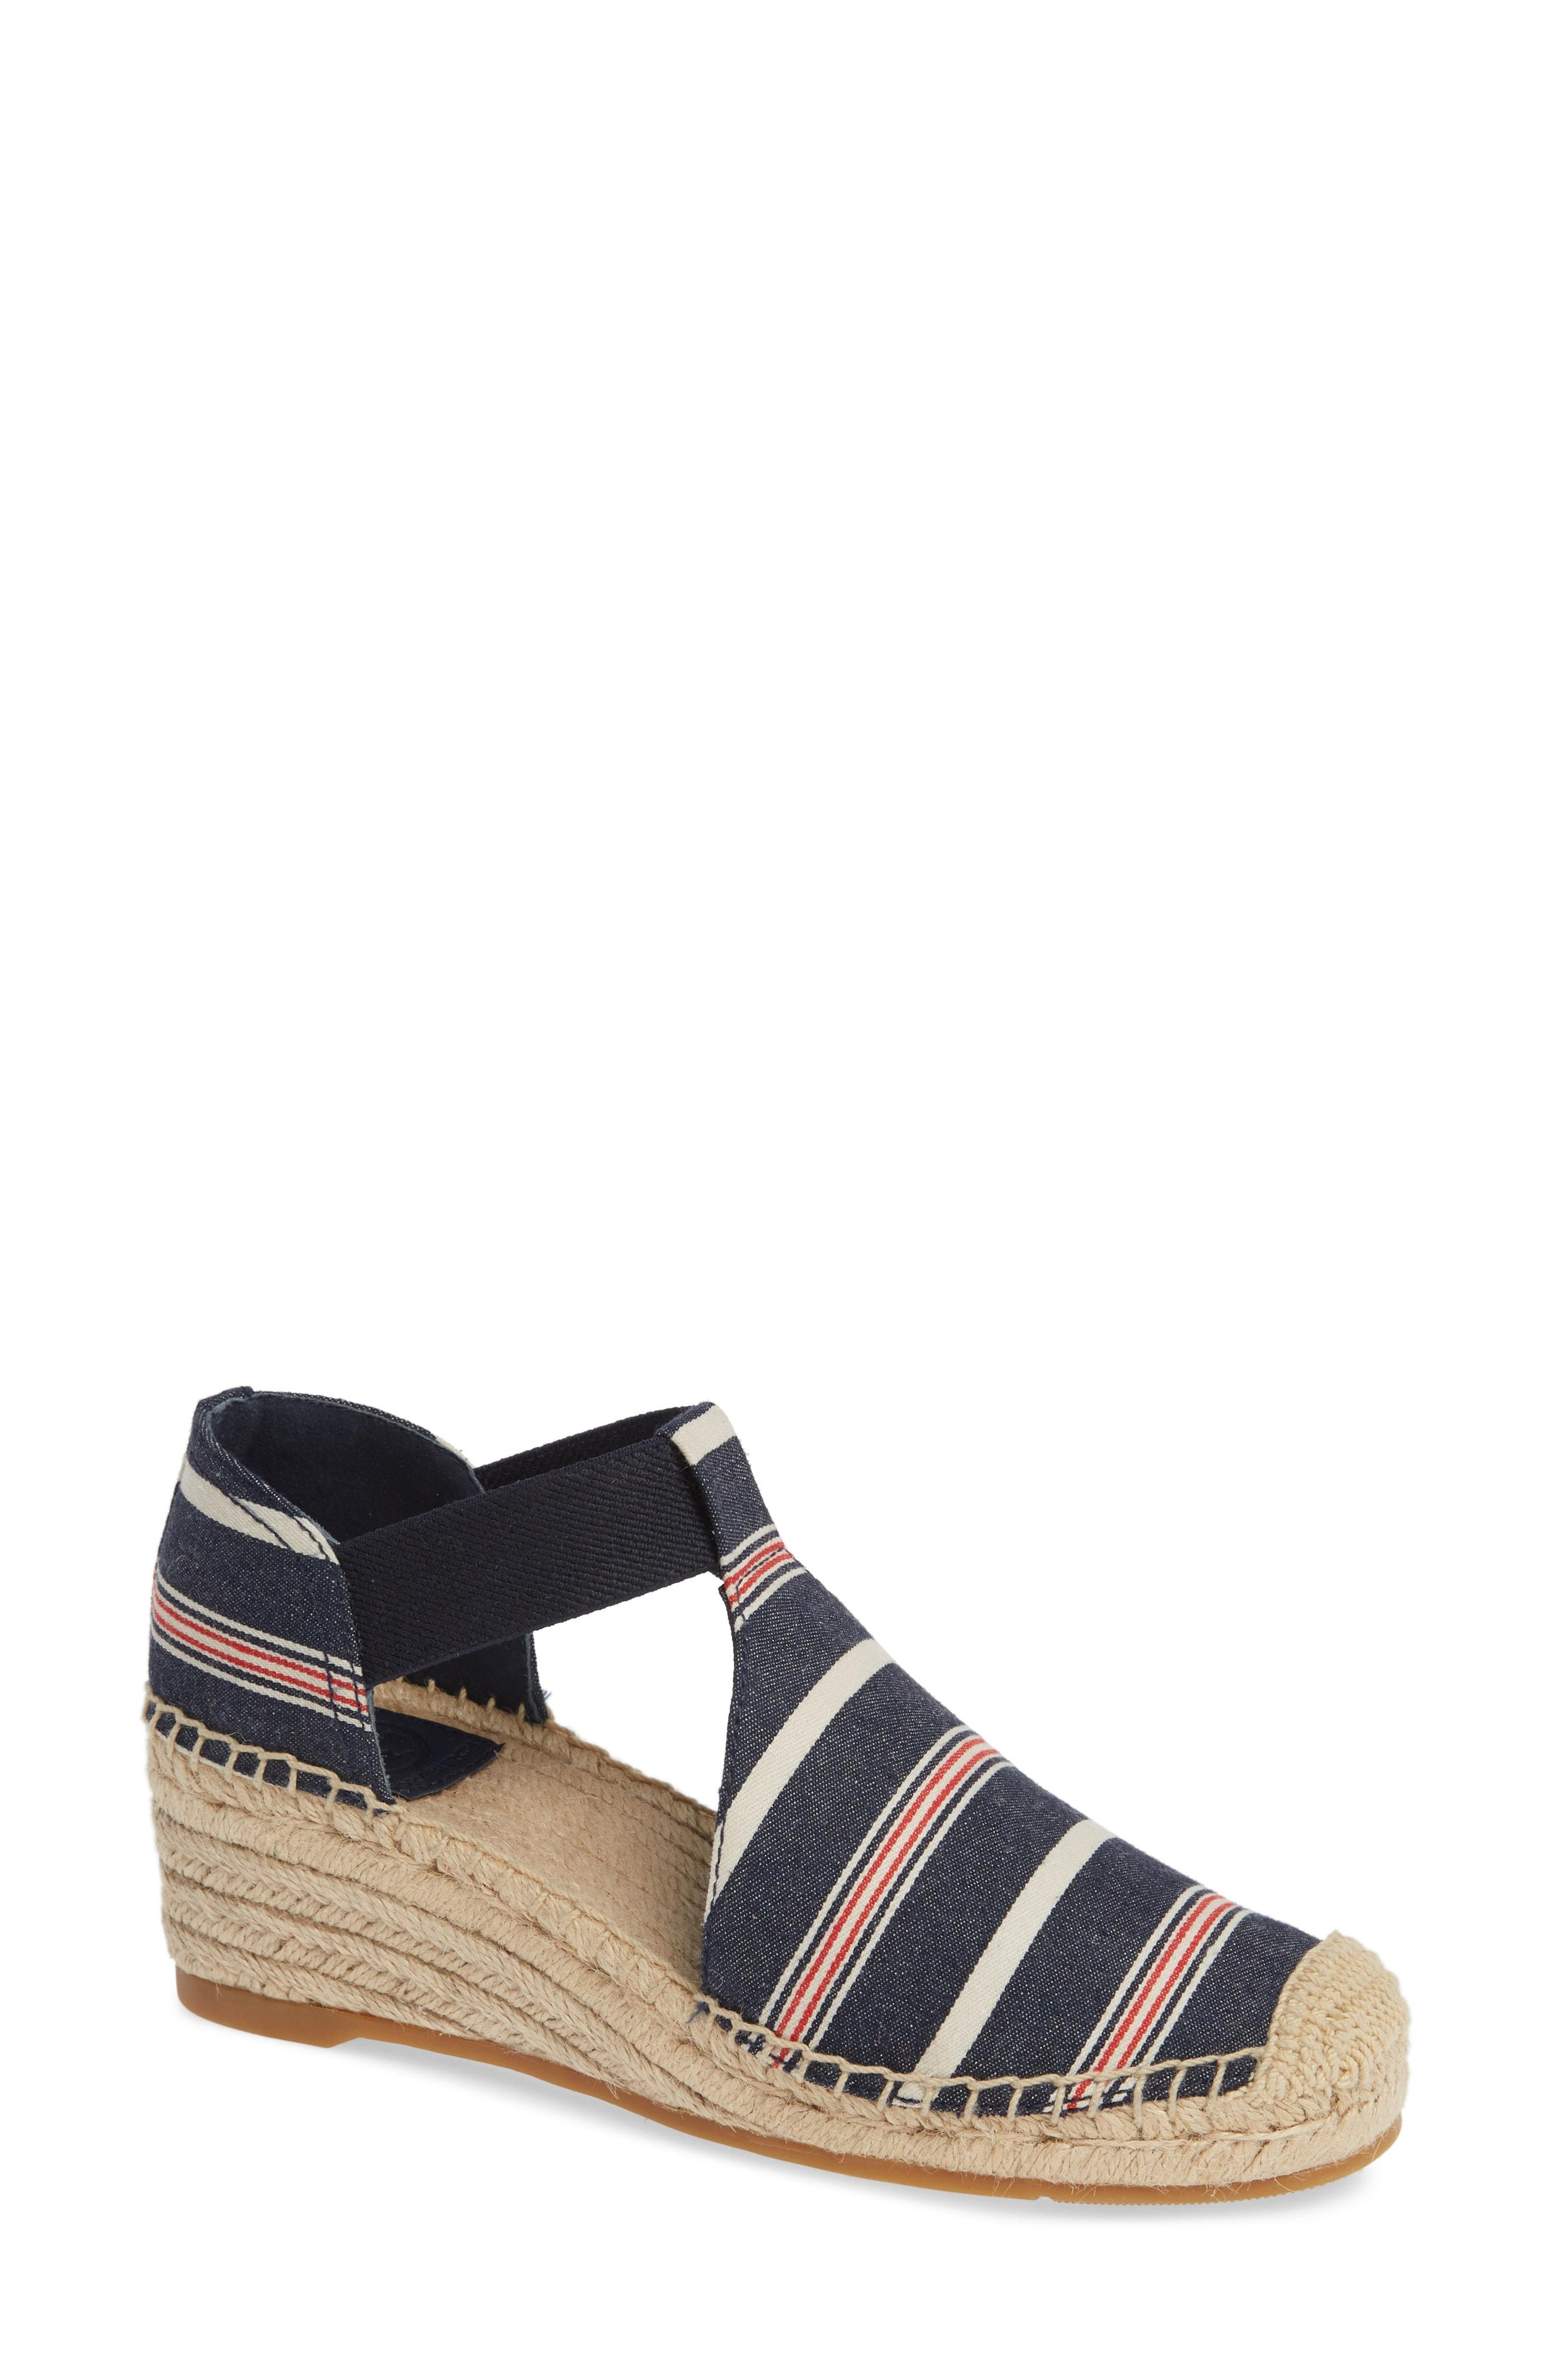 defdd378889 Lyst - Tory Burch Catalina 3 Espadrille Wedge Sandal in Blue